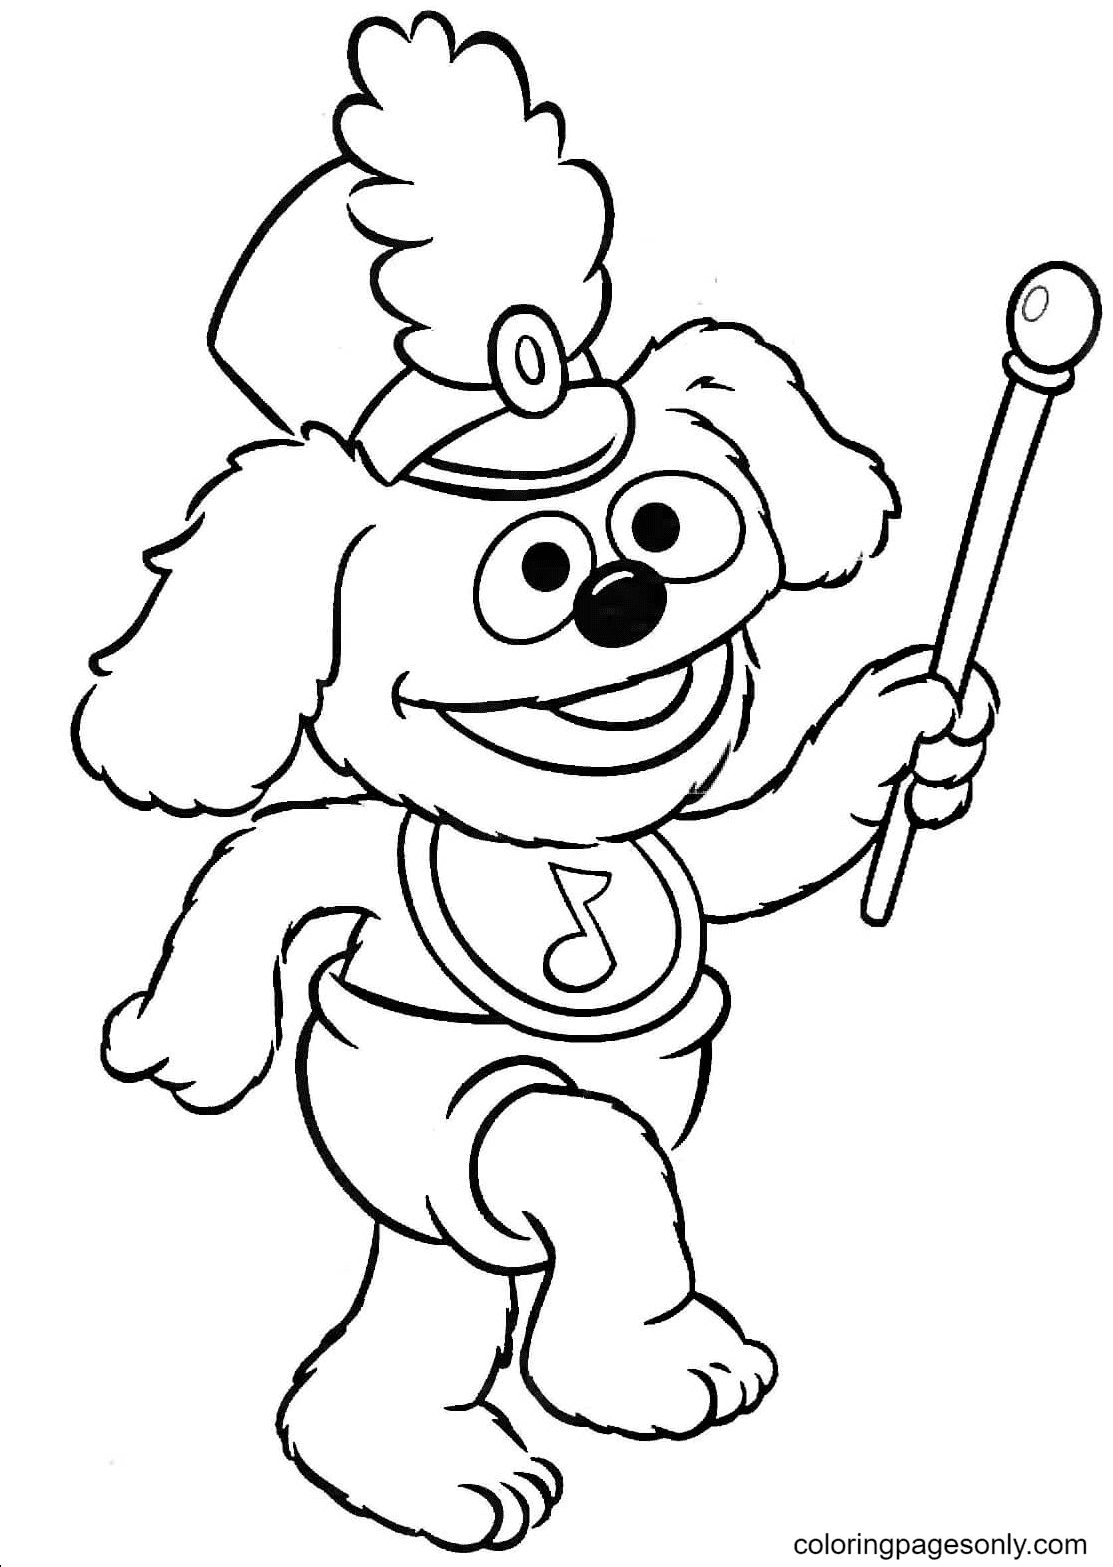 Baby Rowlf Coloring Page